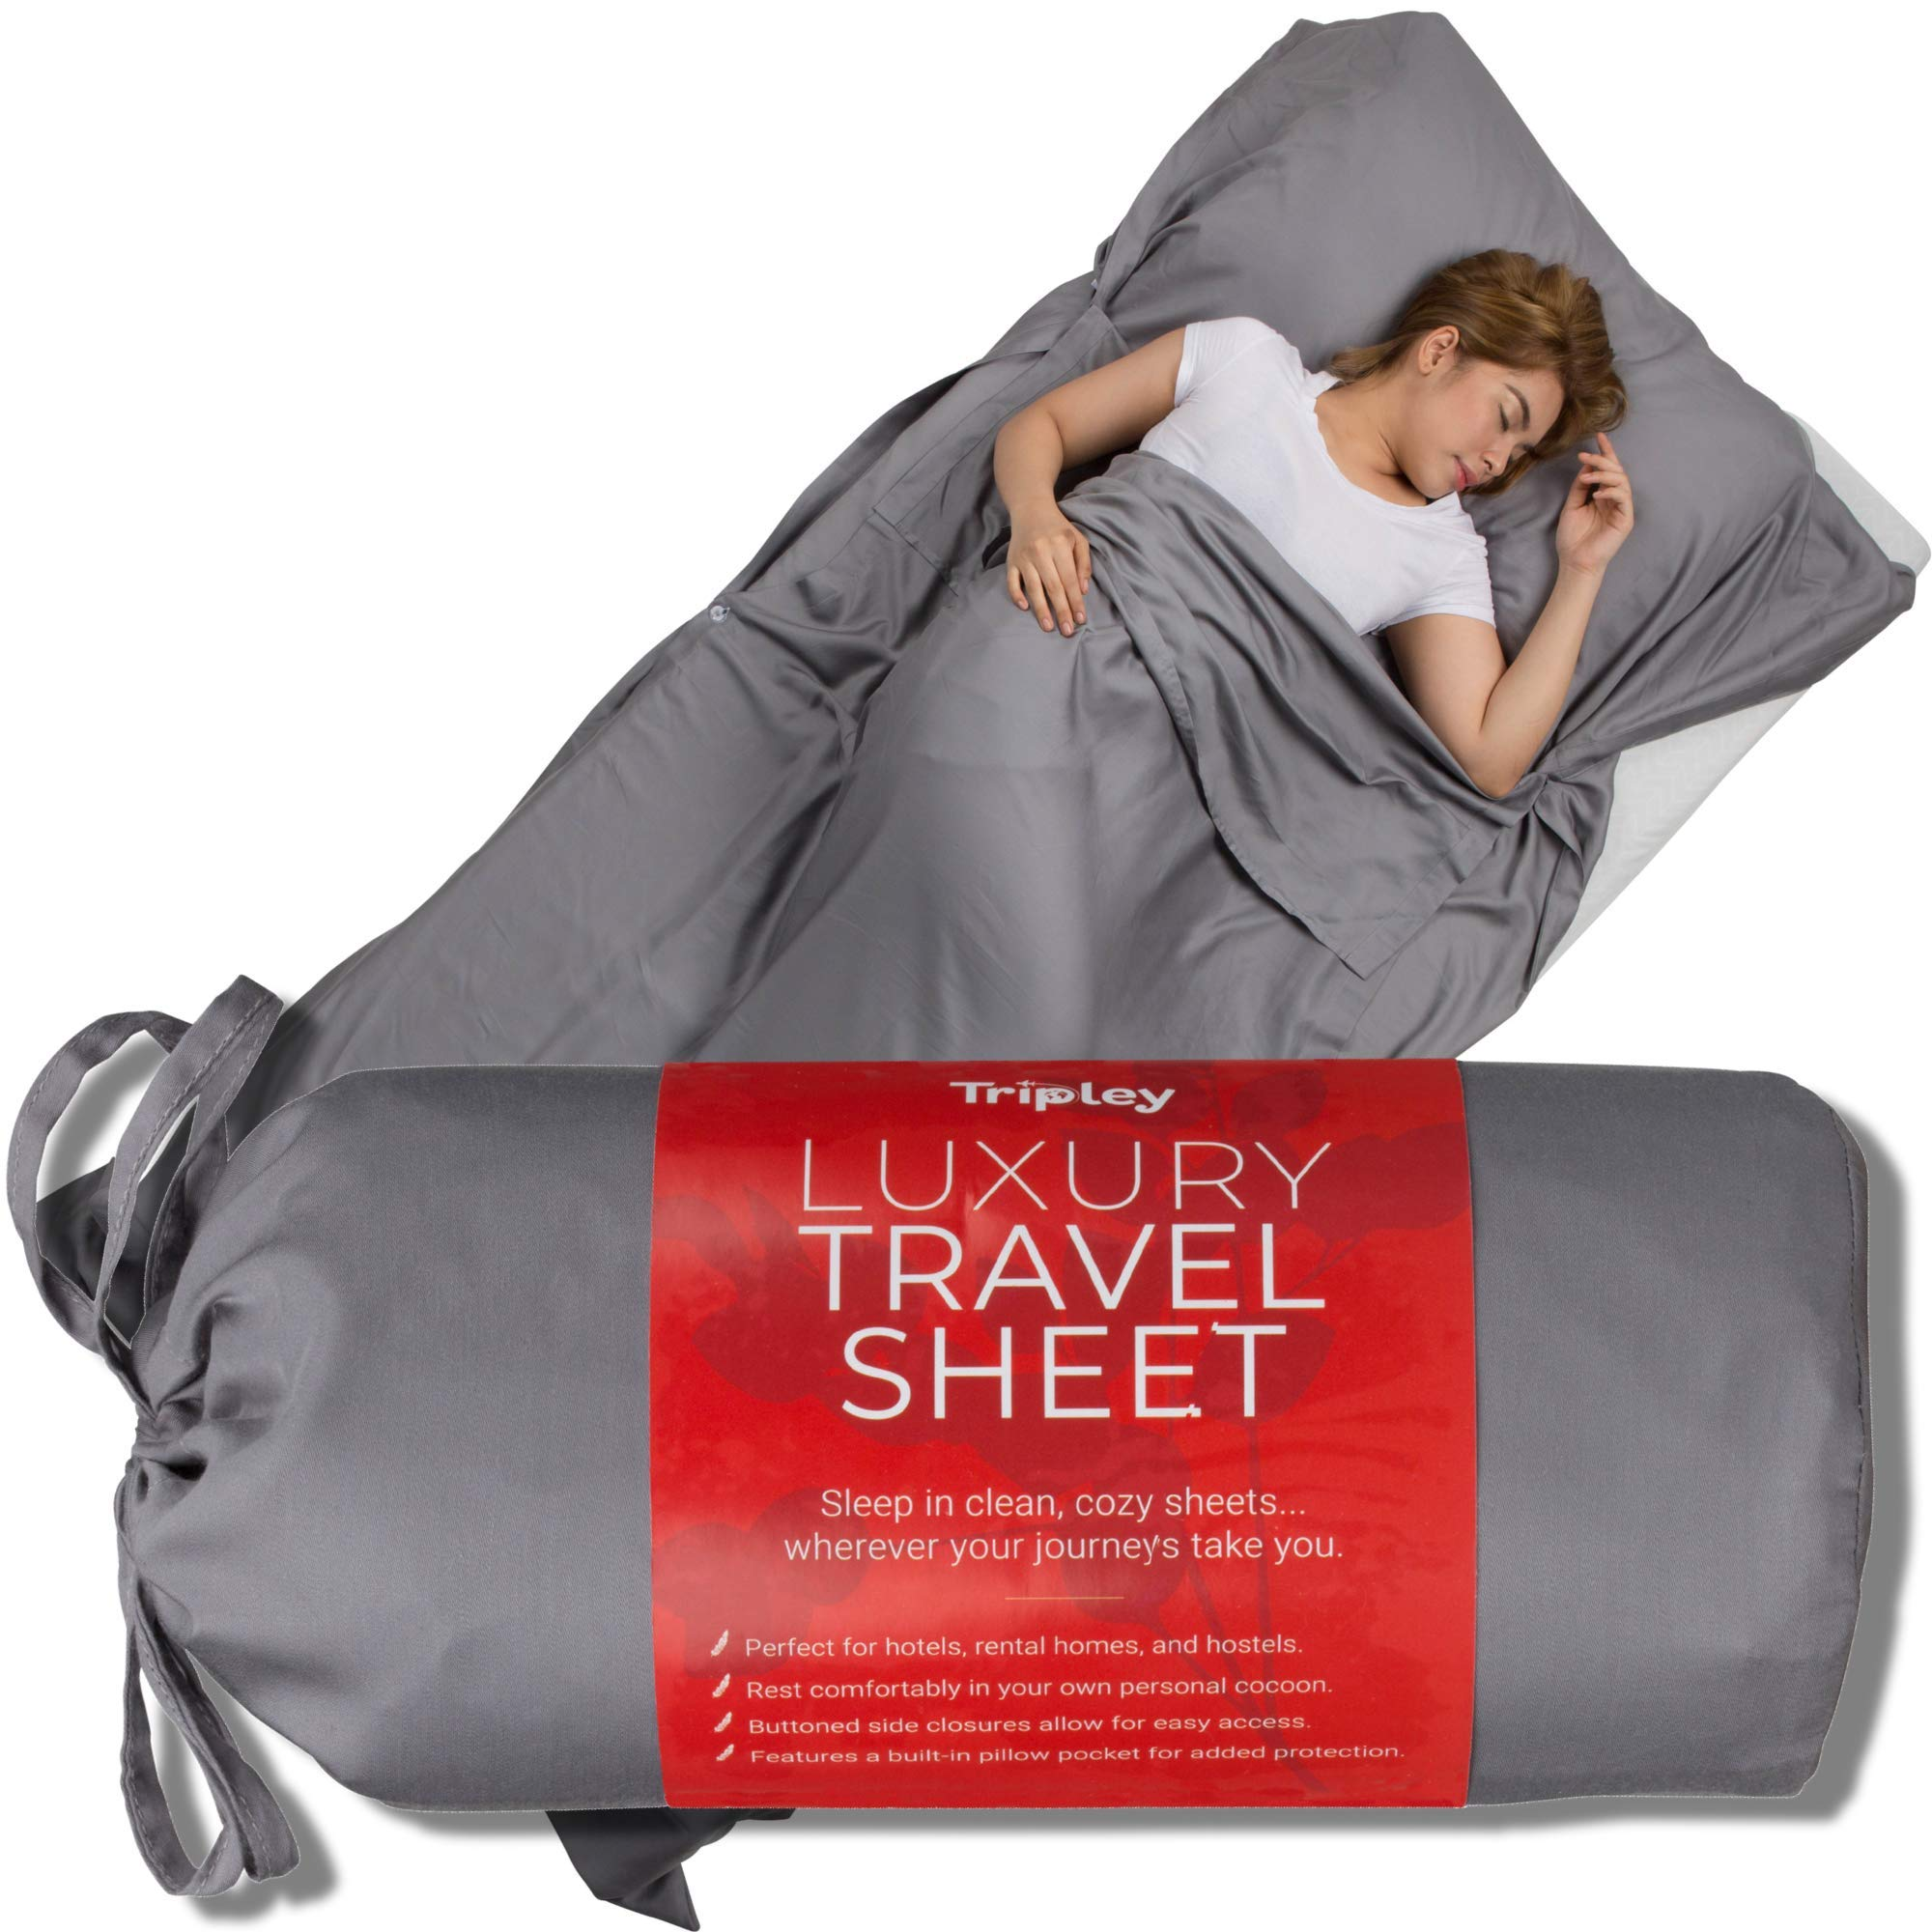 Tripley Travel Sheet, Ultra Soft 100% Tencel Sleeping Bag Liner for Hotels/Camping, Made from Luxuriously Soft Natural Plant-Based Tencel Lyocell Fibers, Satin Weave by Tripley